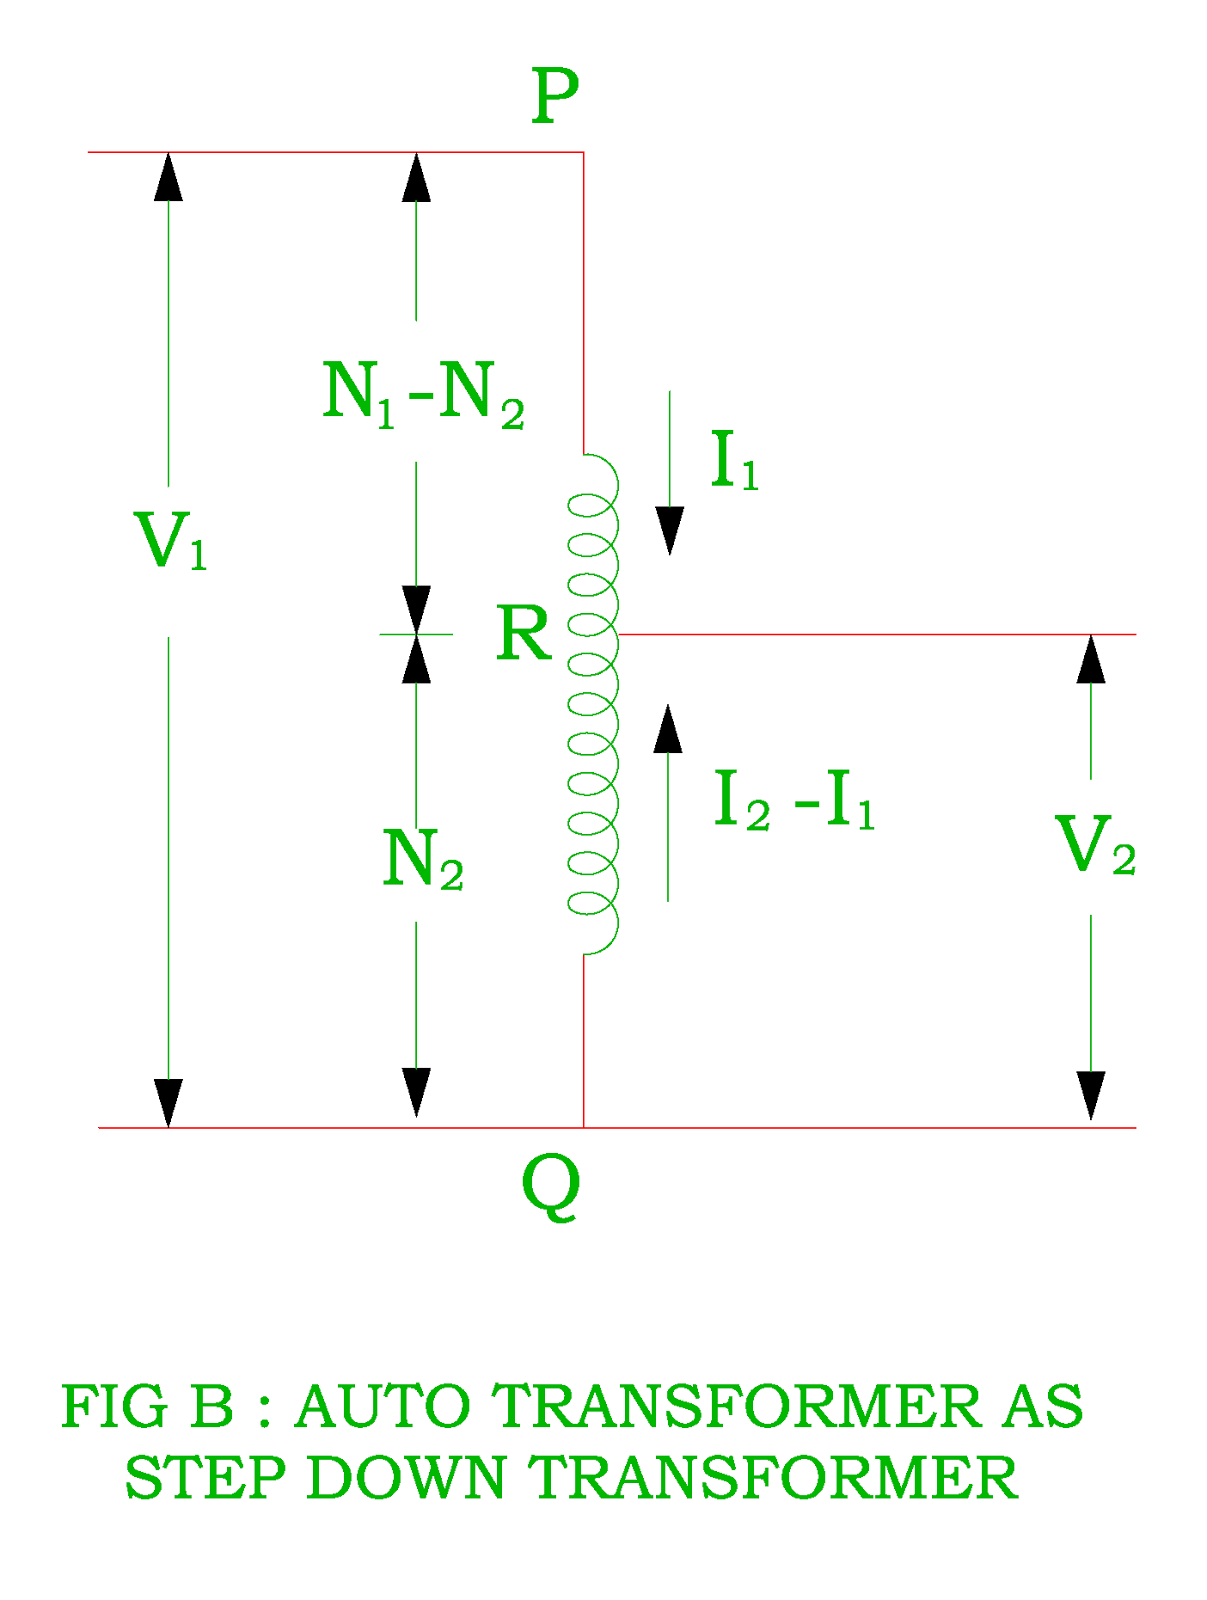 Working Of Auto Transformer Saving In Copper Material And 3 Wire Wiring Diagram As Step Down